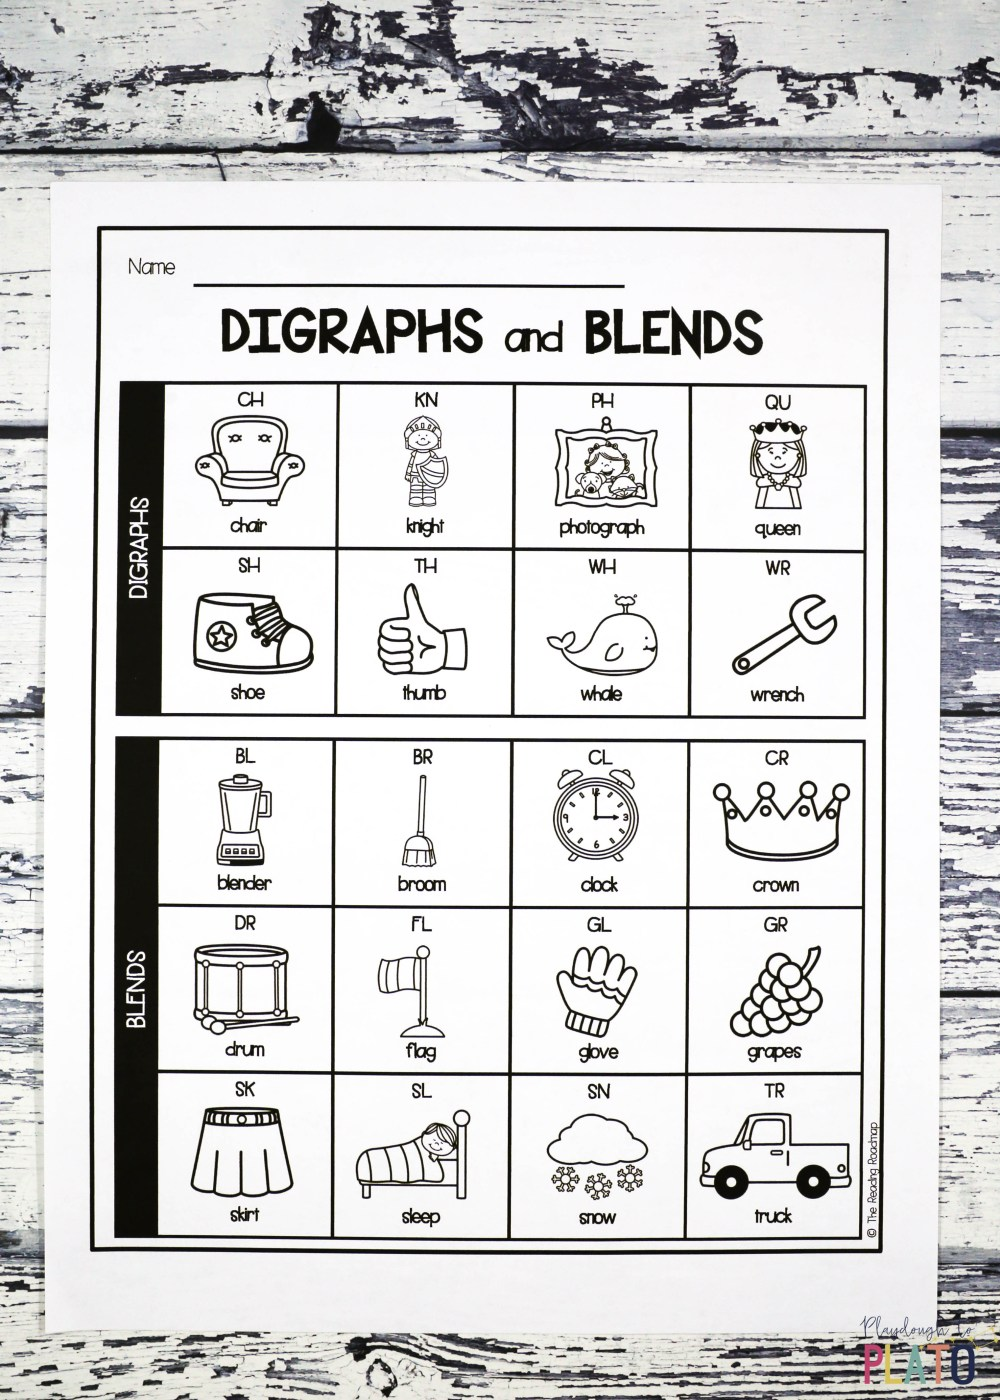 medium resolution of Digraph and Blend Chart - Playdough To Plato